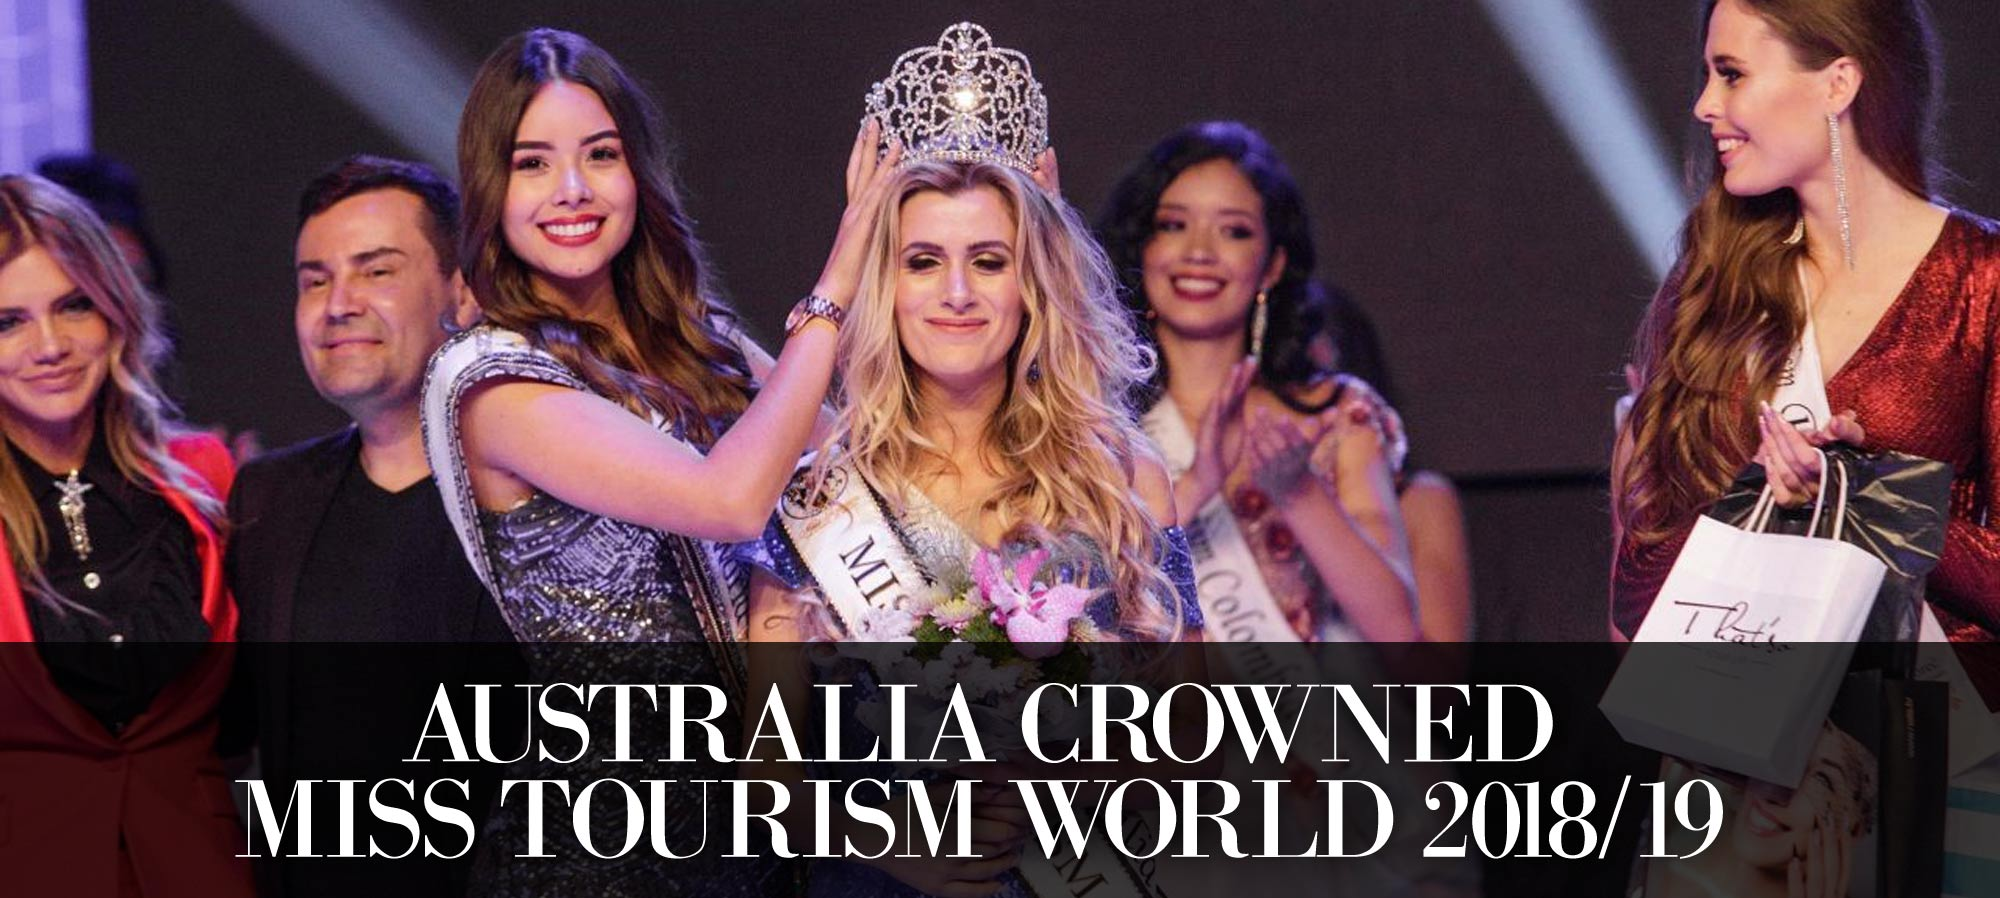 miss tourism world final winner 2018-2019